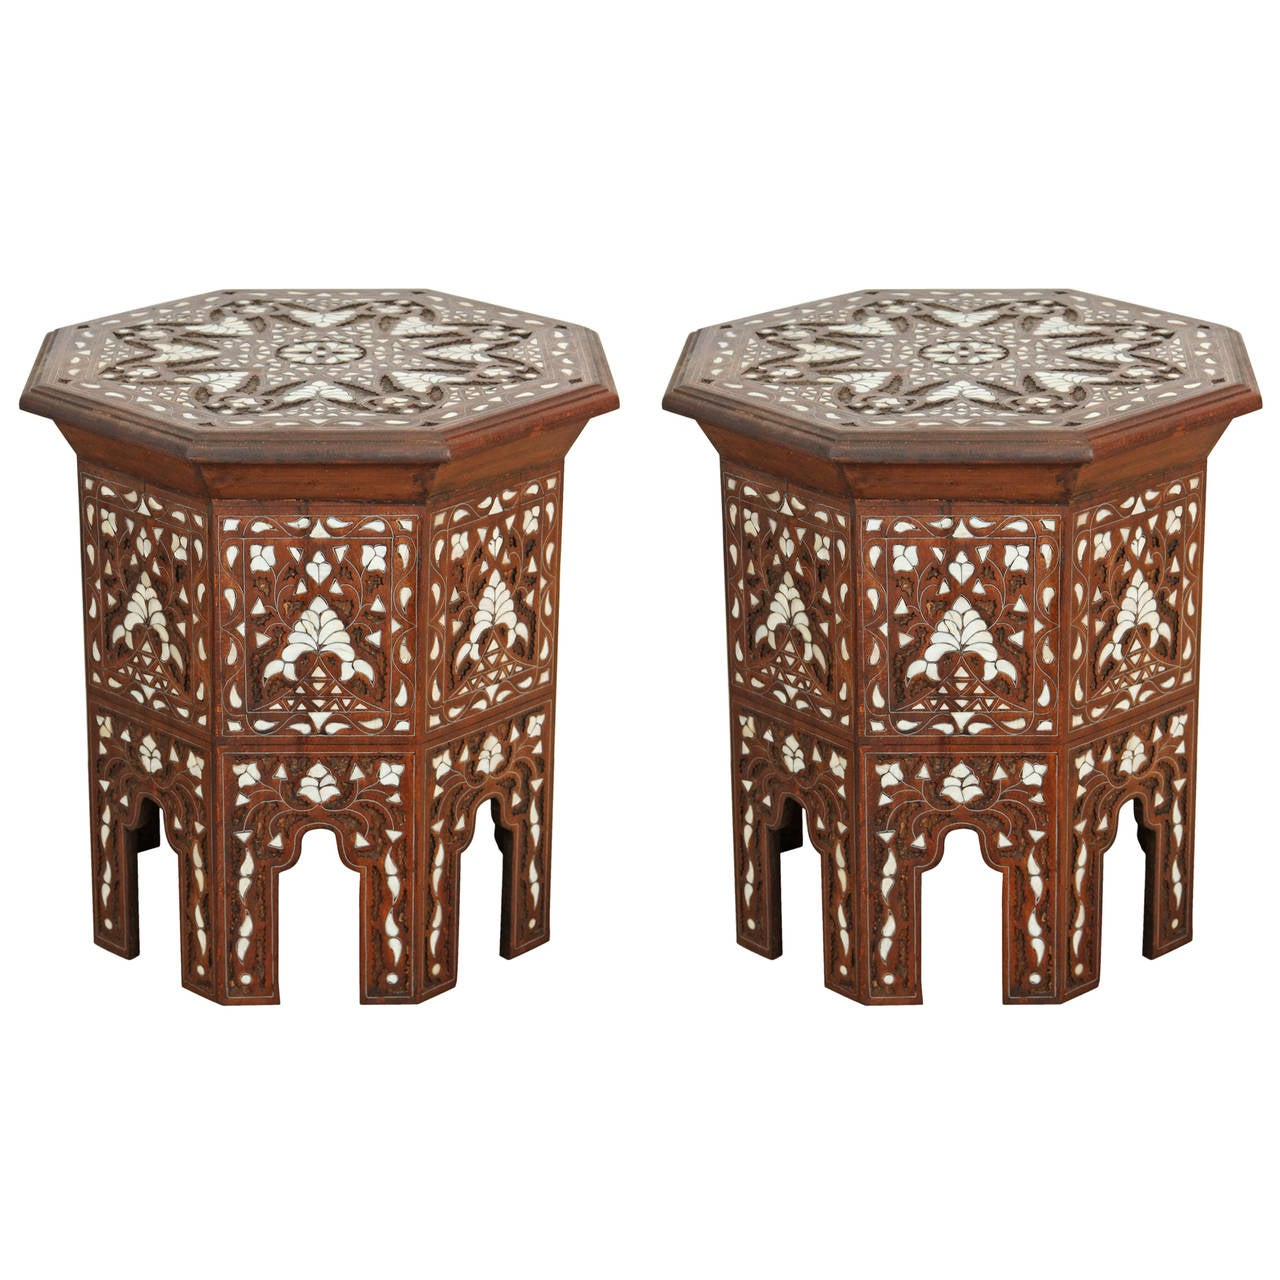 Marvelous Pair Of Syrian Mother Of Pearl Inlaid Side Tables 1